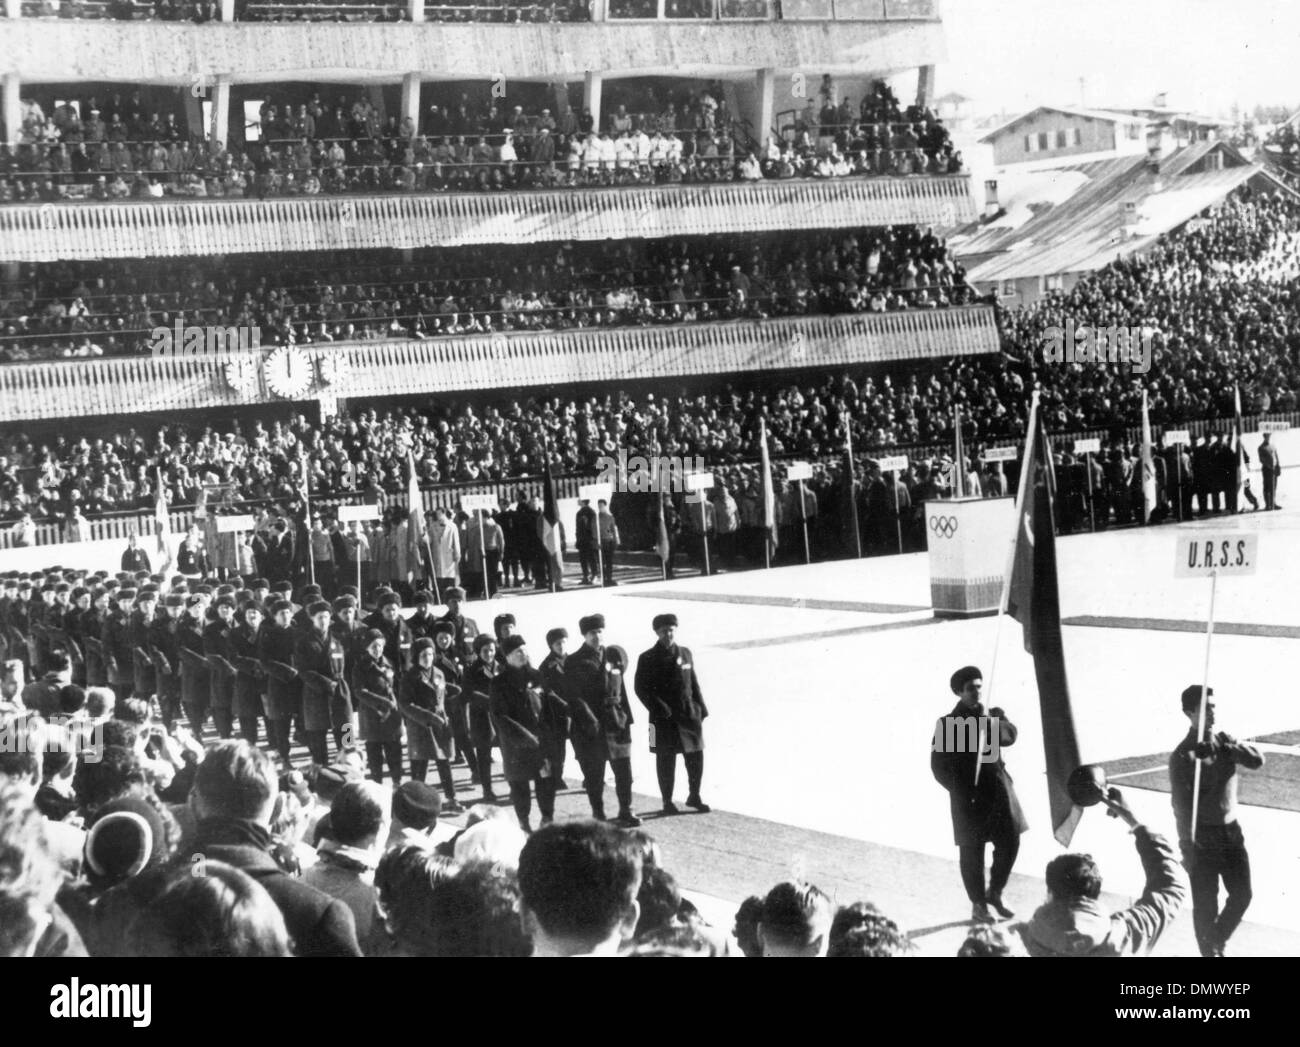 Jan. 26, 1956 - Cortina d'Ampezzo, Italy - Inauguration of the 7th Olympics Winter Games at Cortina d'Ampezzo, Italy in 1956. PICTURED: The National team of the Soviet Union enters the stadium. (Credit Image: © KEYSTONE Pictures USA/ZUMAPRESS.com) - Stock Image